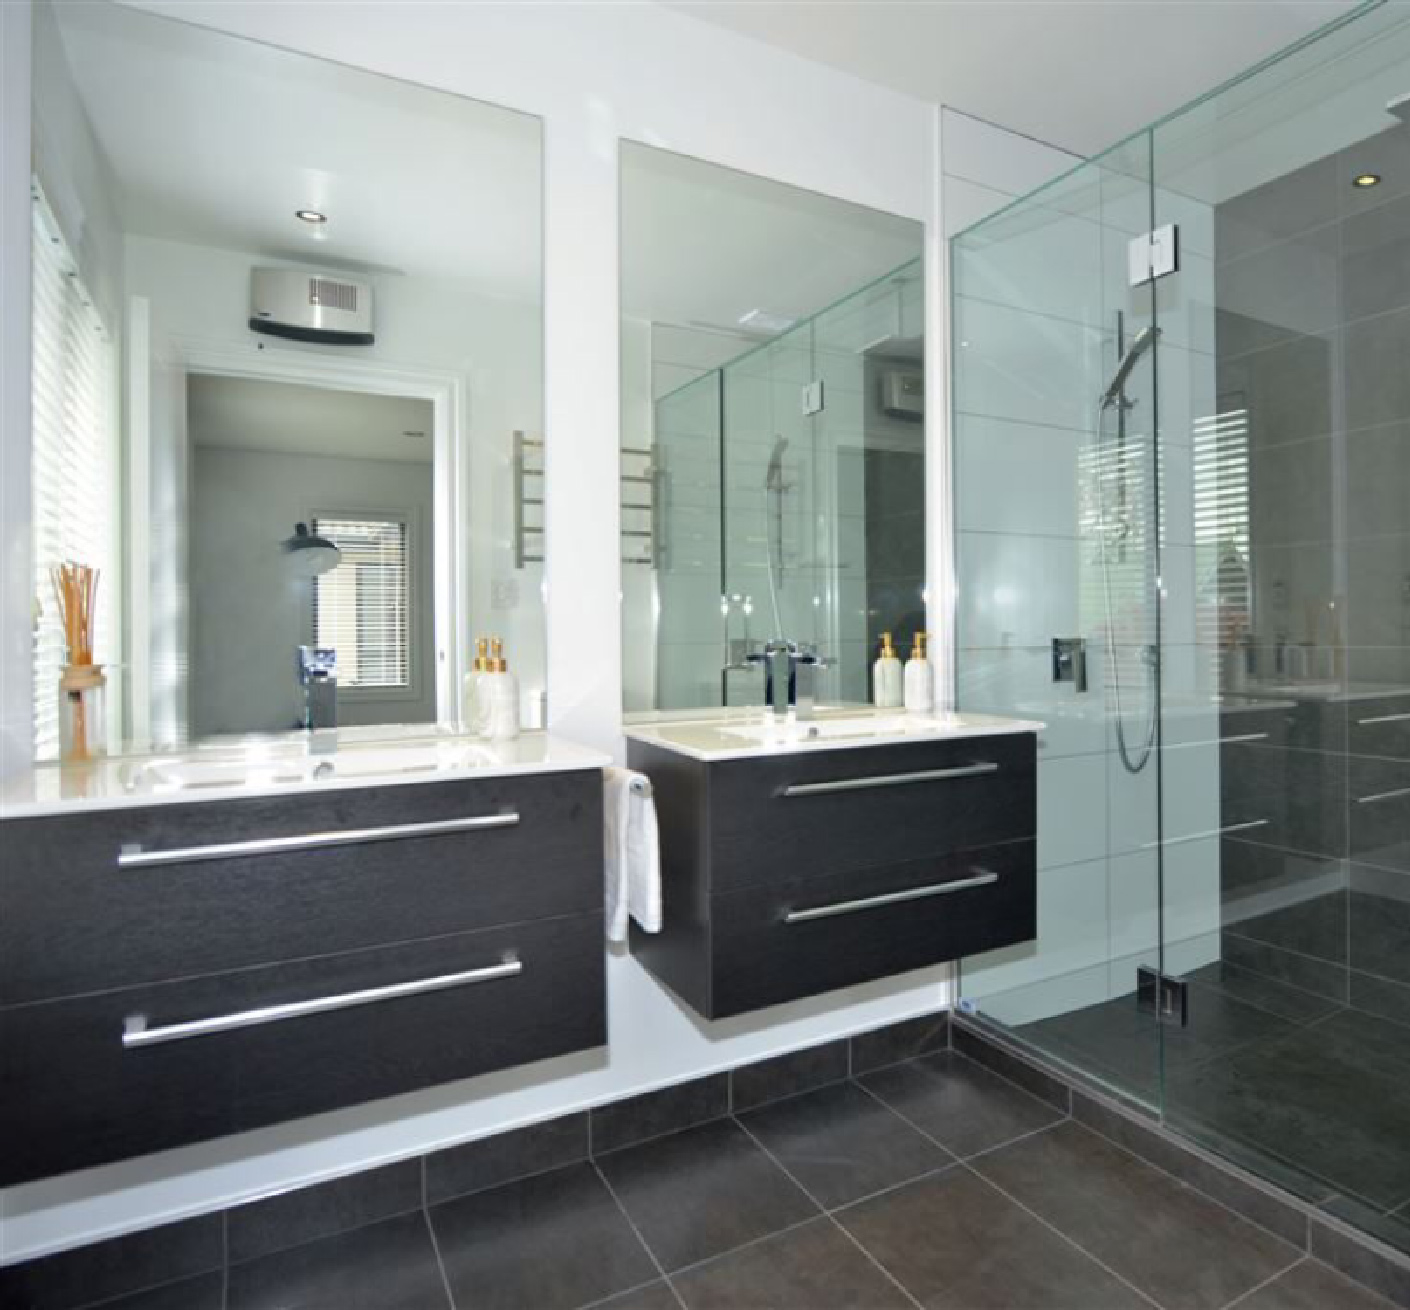 Mirrors Bathroom Vanity Shower Nz Frameless Glass